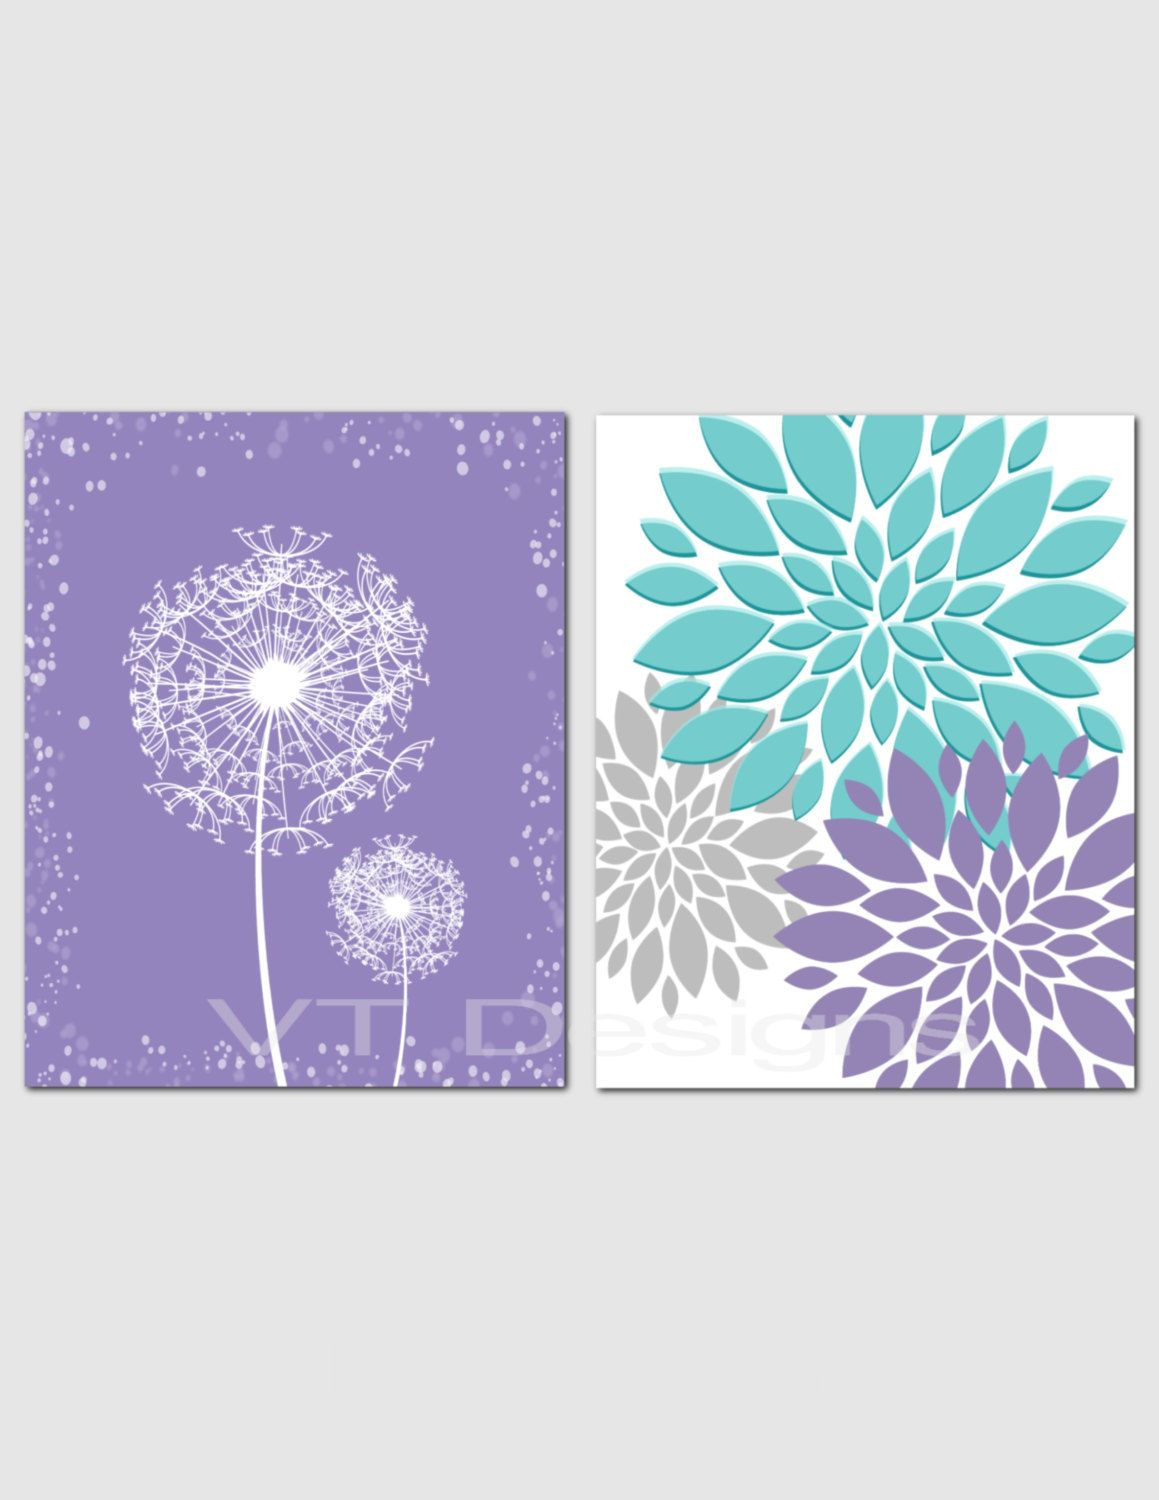 Dandelion Wall Art Purple Teal Gray Printable Home Decor Floral Art Peonies Bathroom Decor Bedroom Teal Wall Decor Dandelion Wall Art Bedroom Wall Art